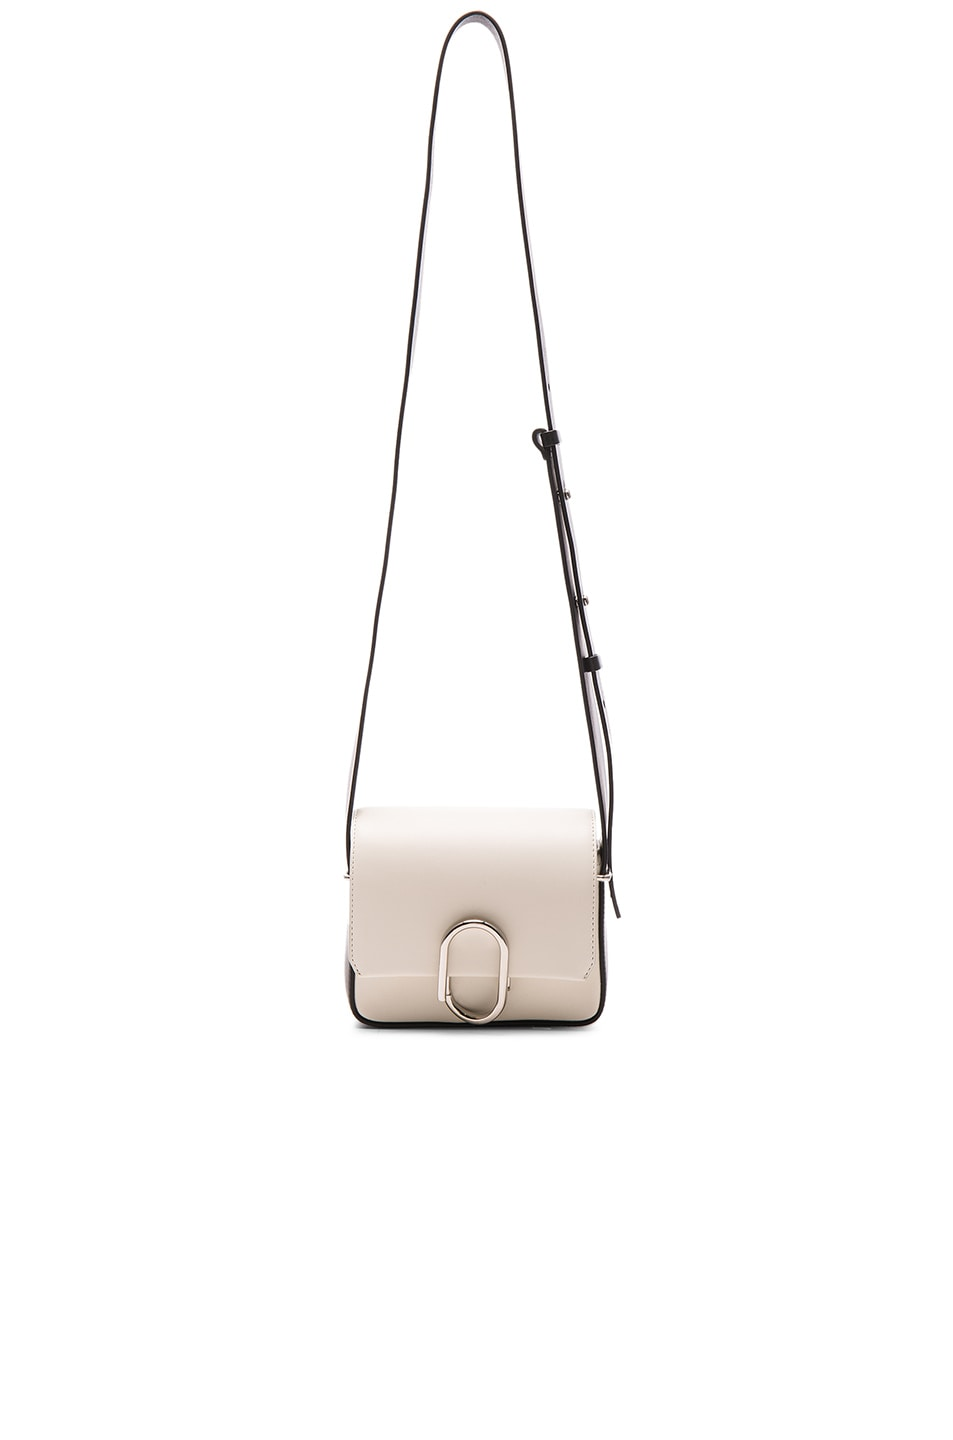 Image 1 of 3.1 phillip lim Alix Mini Crossbody Bag in Black & Off White